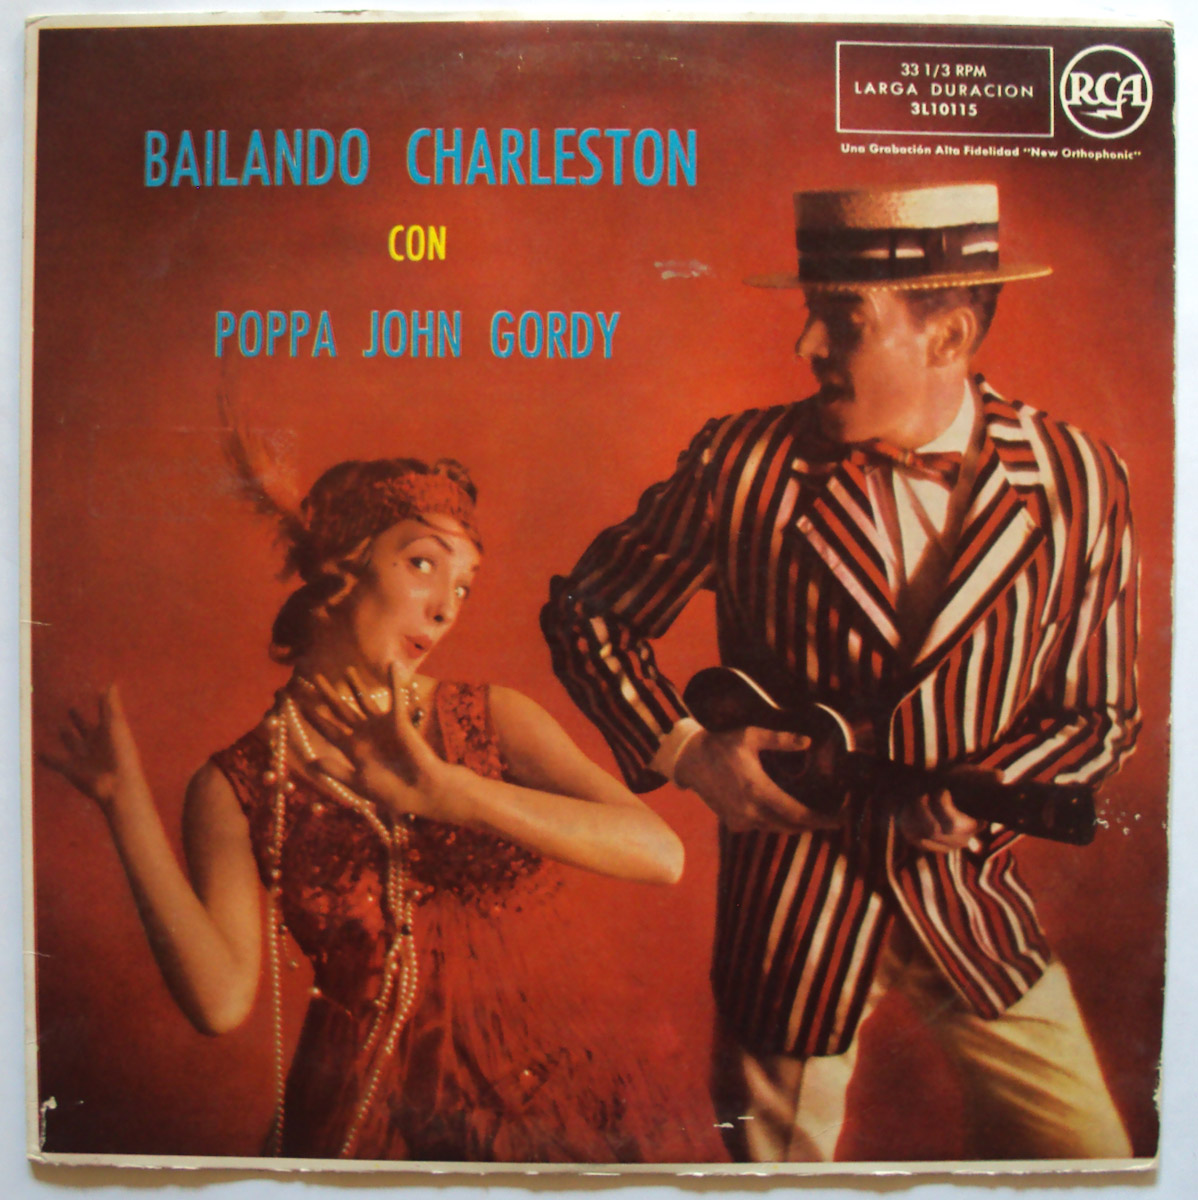 Poppa John Gordy bailando charleston con (a night at poppa john's)